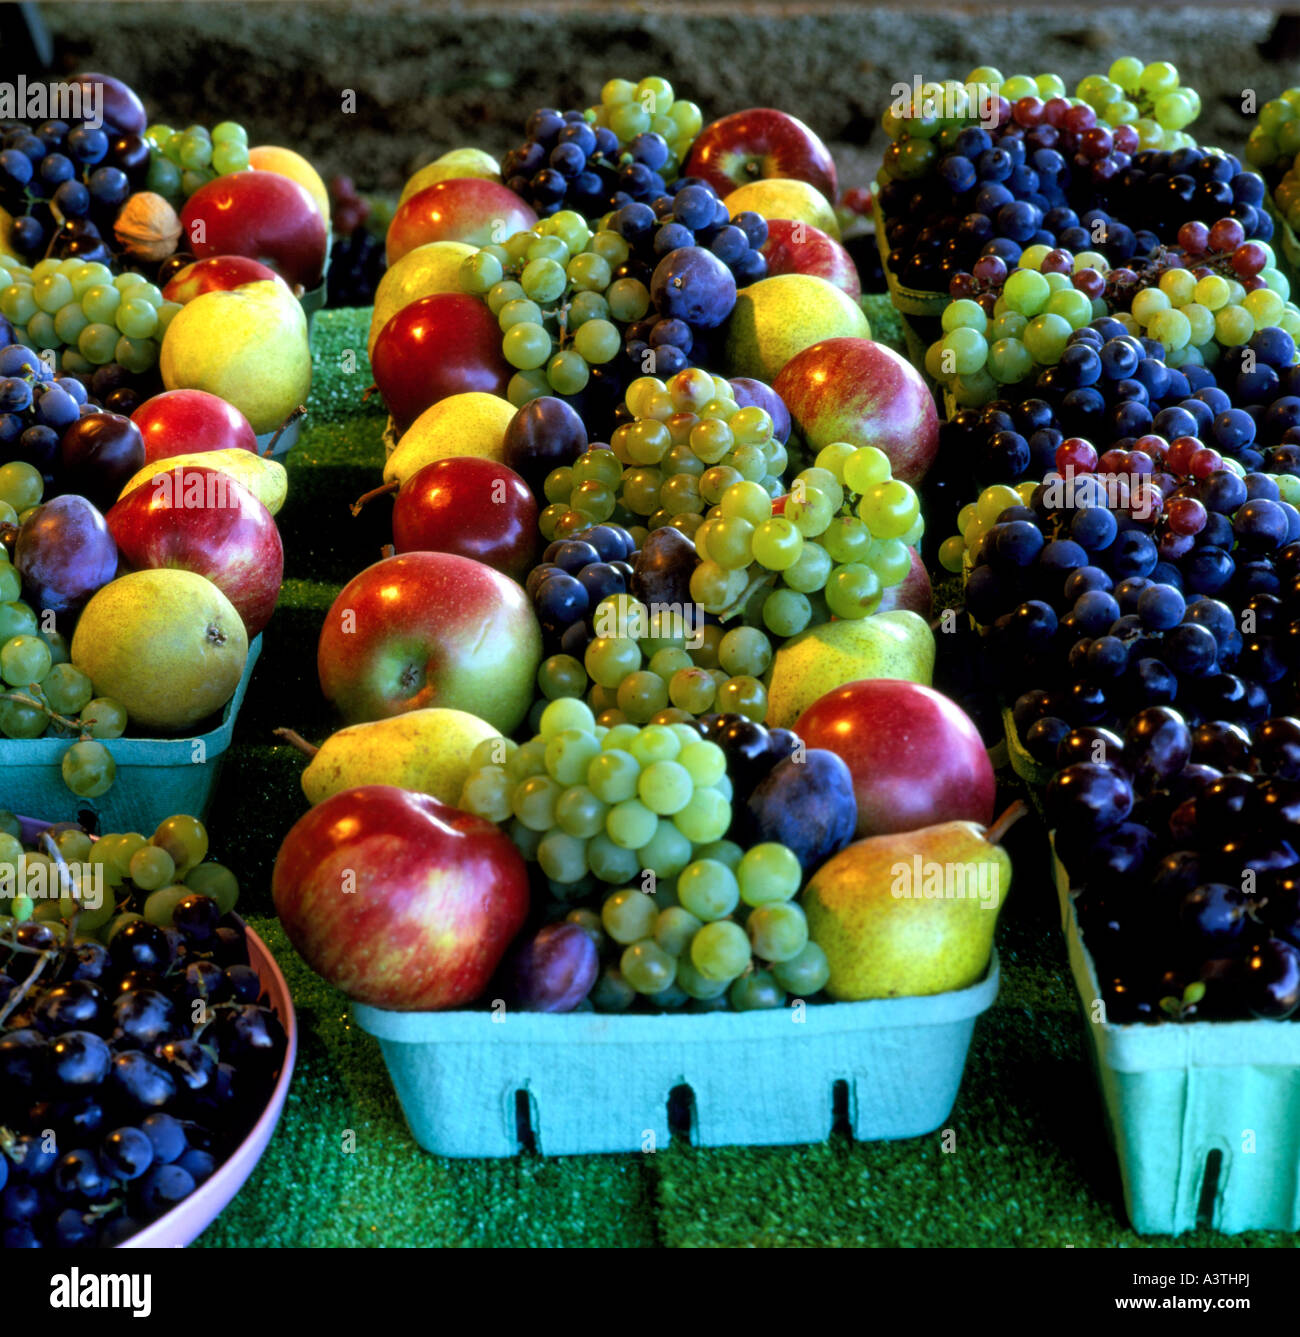 Farm Stand Stock Photos & Farm Stand Stock Images - Alamy